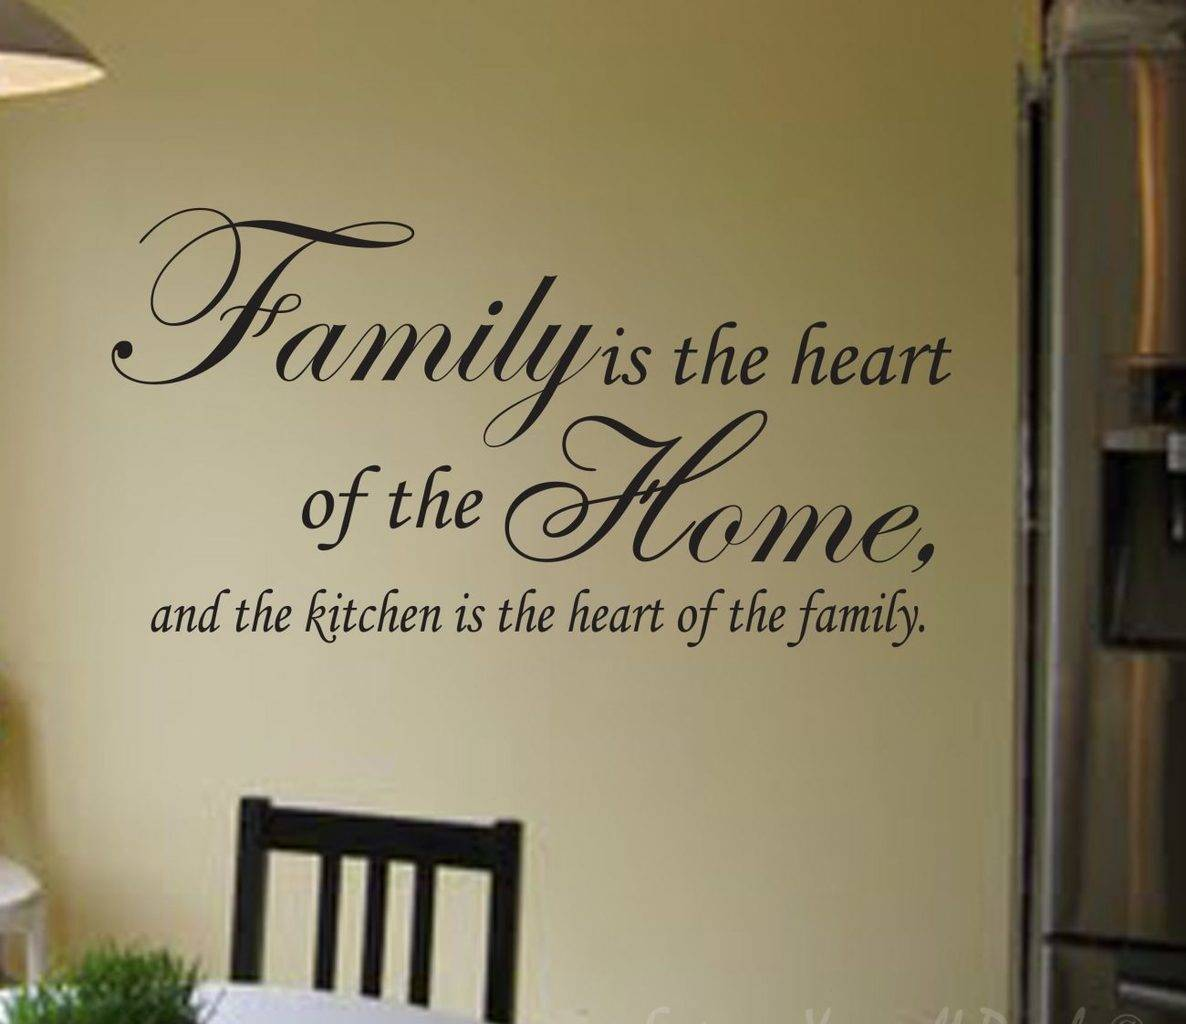 Kitchen Is The Heart Of The Family Wall Decal Wall Decals Wall